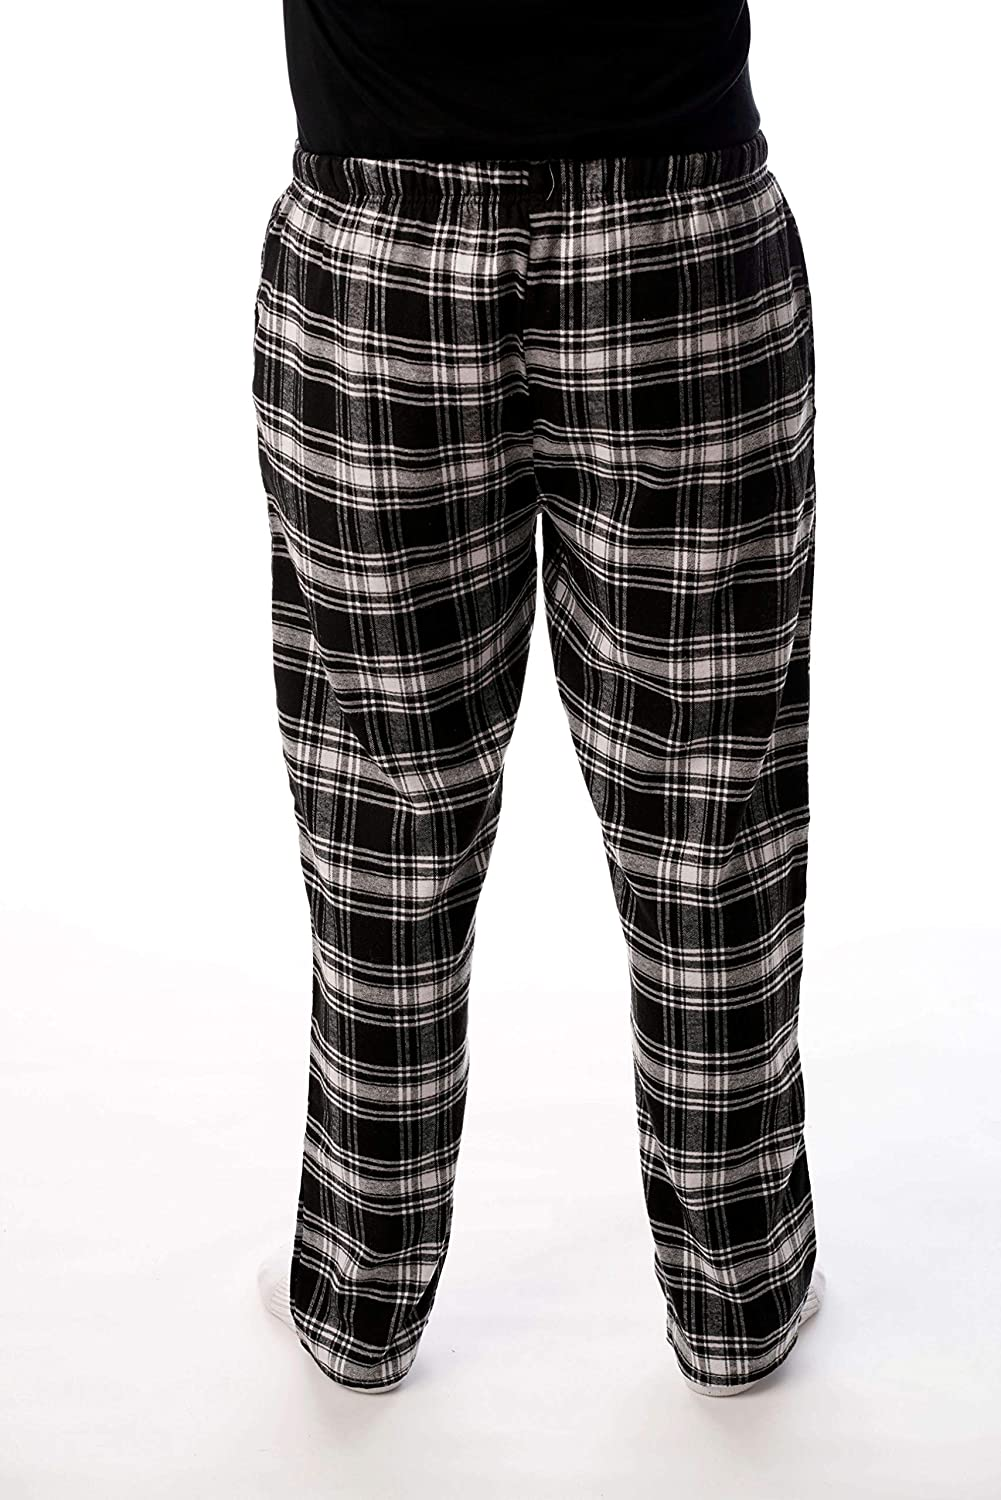 01d201cda7  followme Men s Flannel Pajamas - Plaid Pajama Pants for Men - Lounge    Sleep PJ Bottoms at Amazon Men s Clothing store